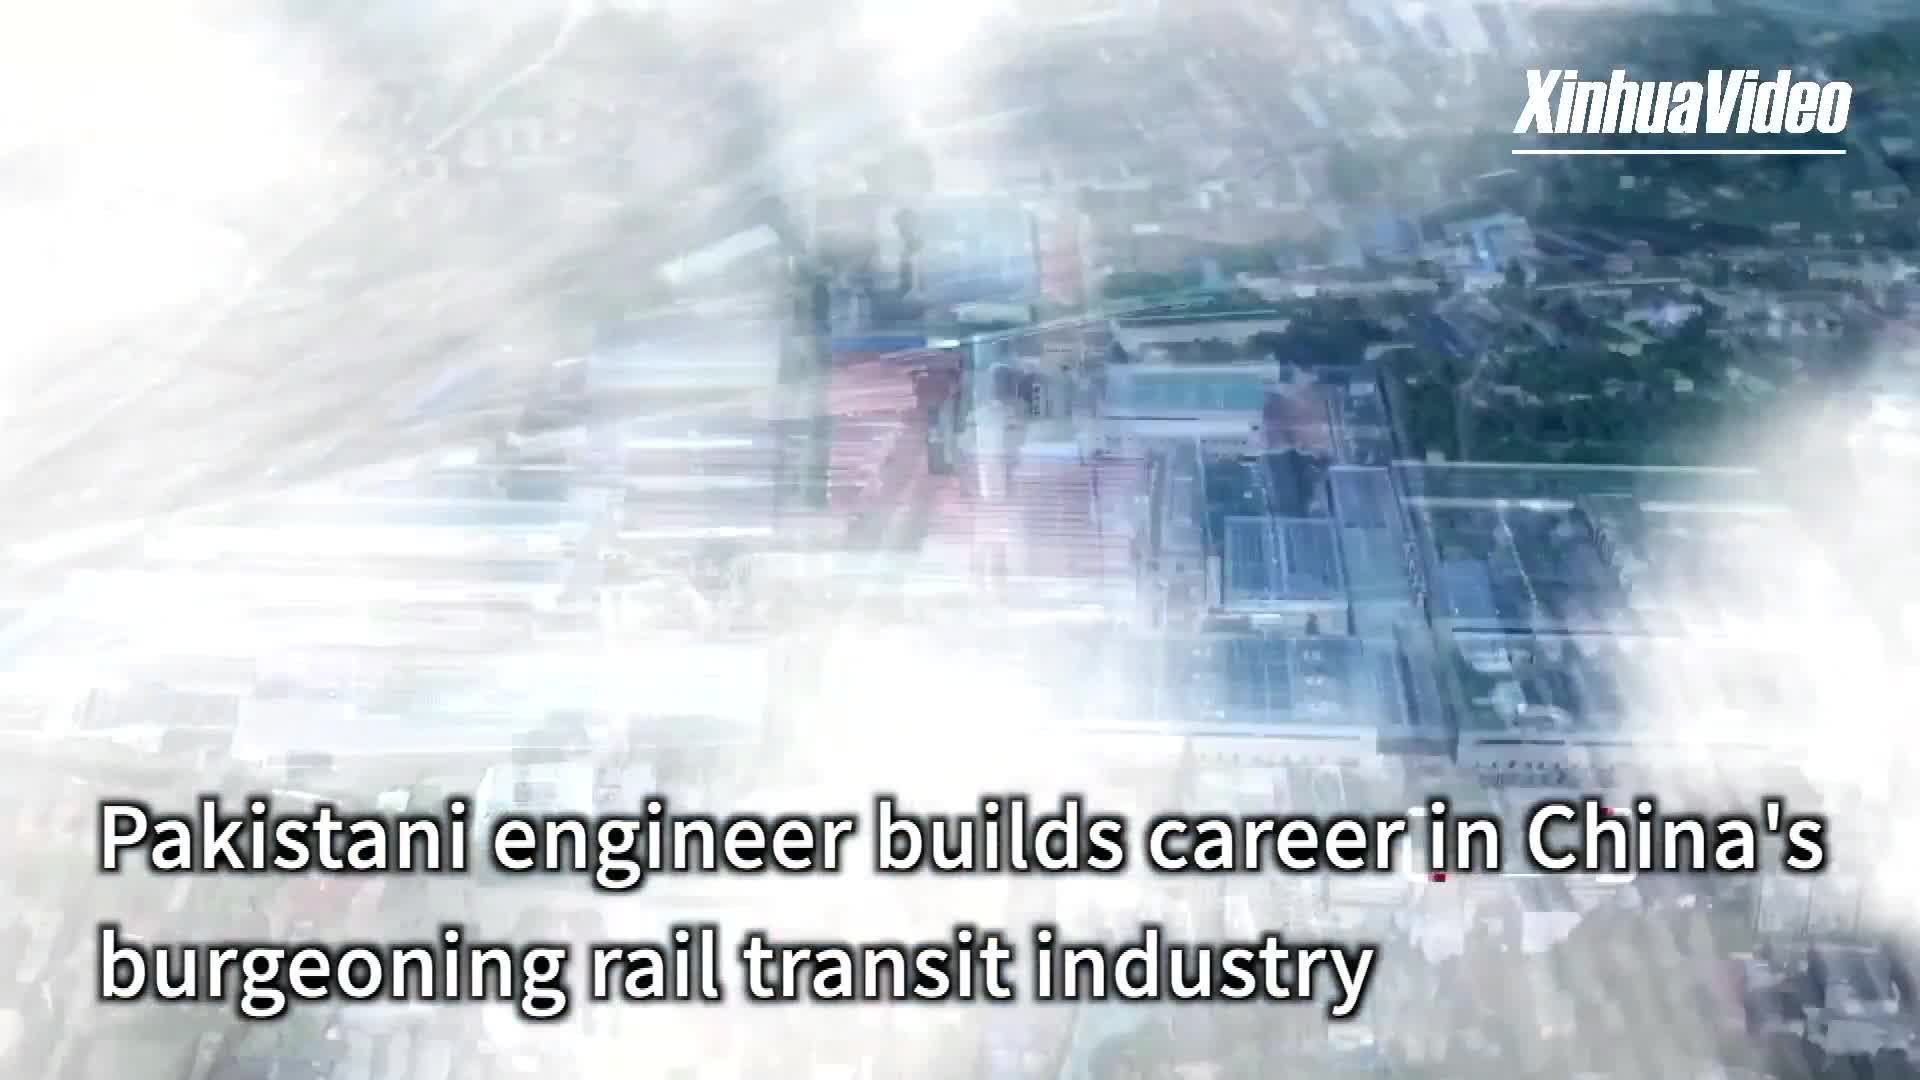 Pakistani engineer builds career in China's burgeoning rail transit industry